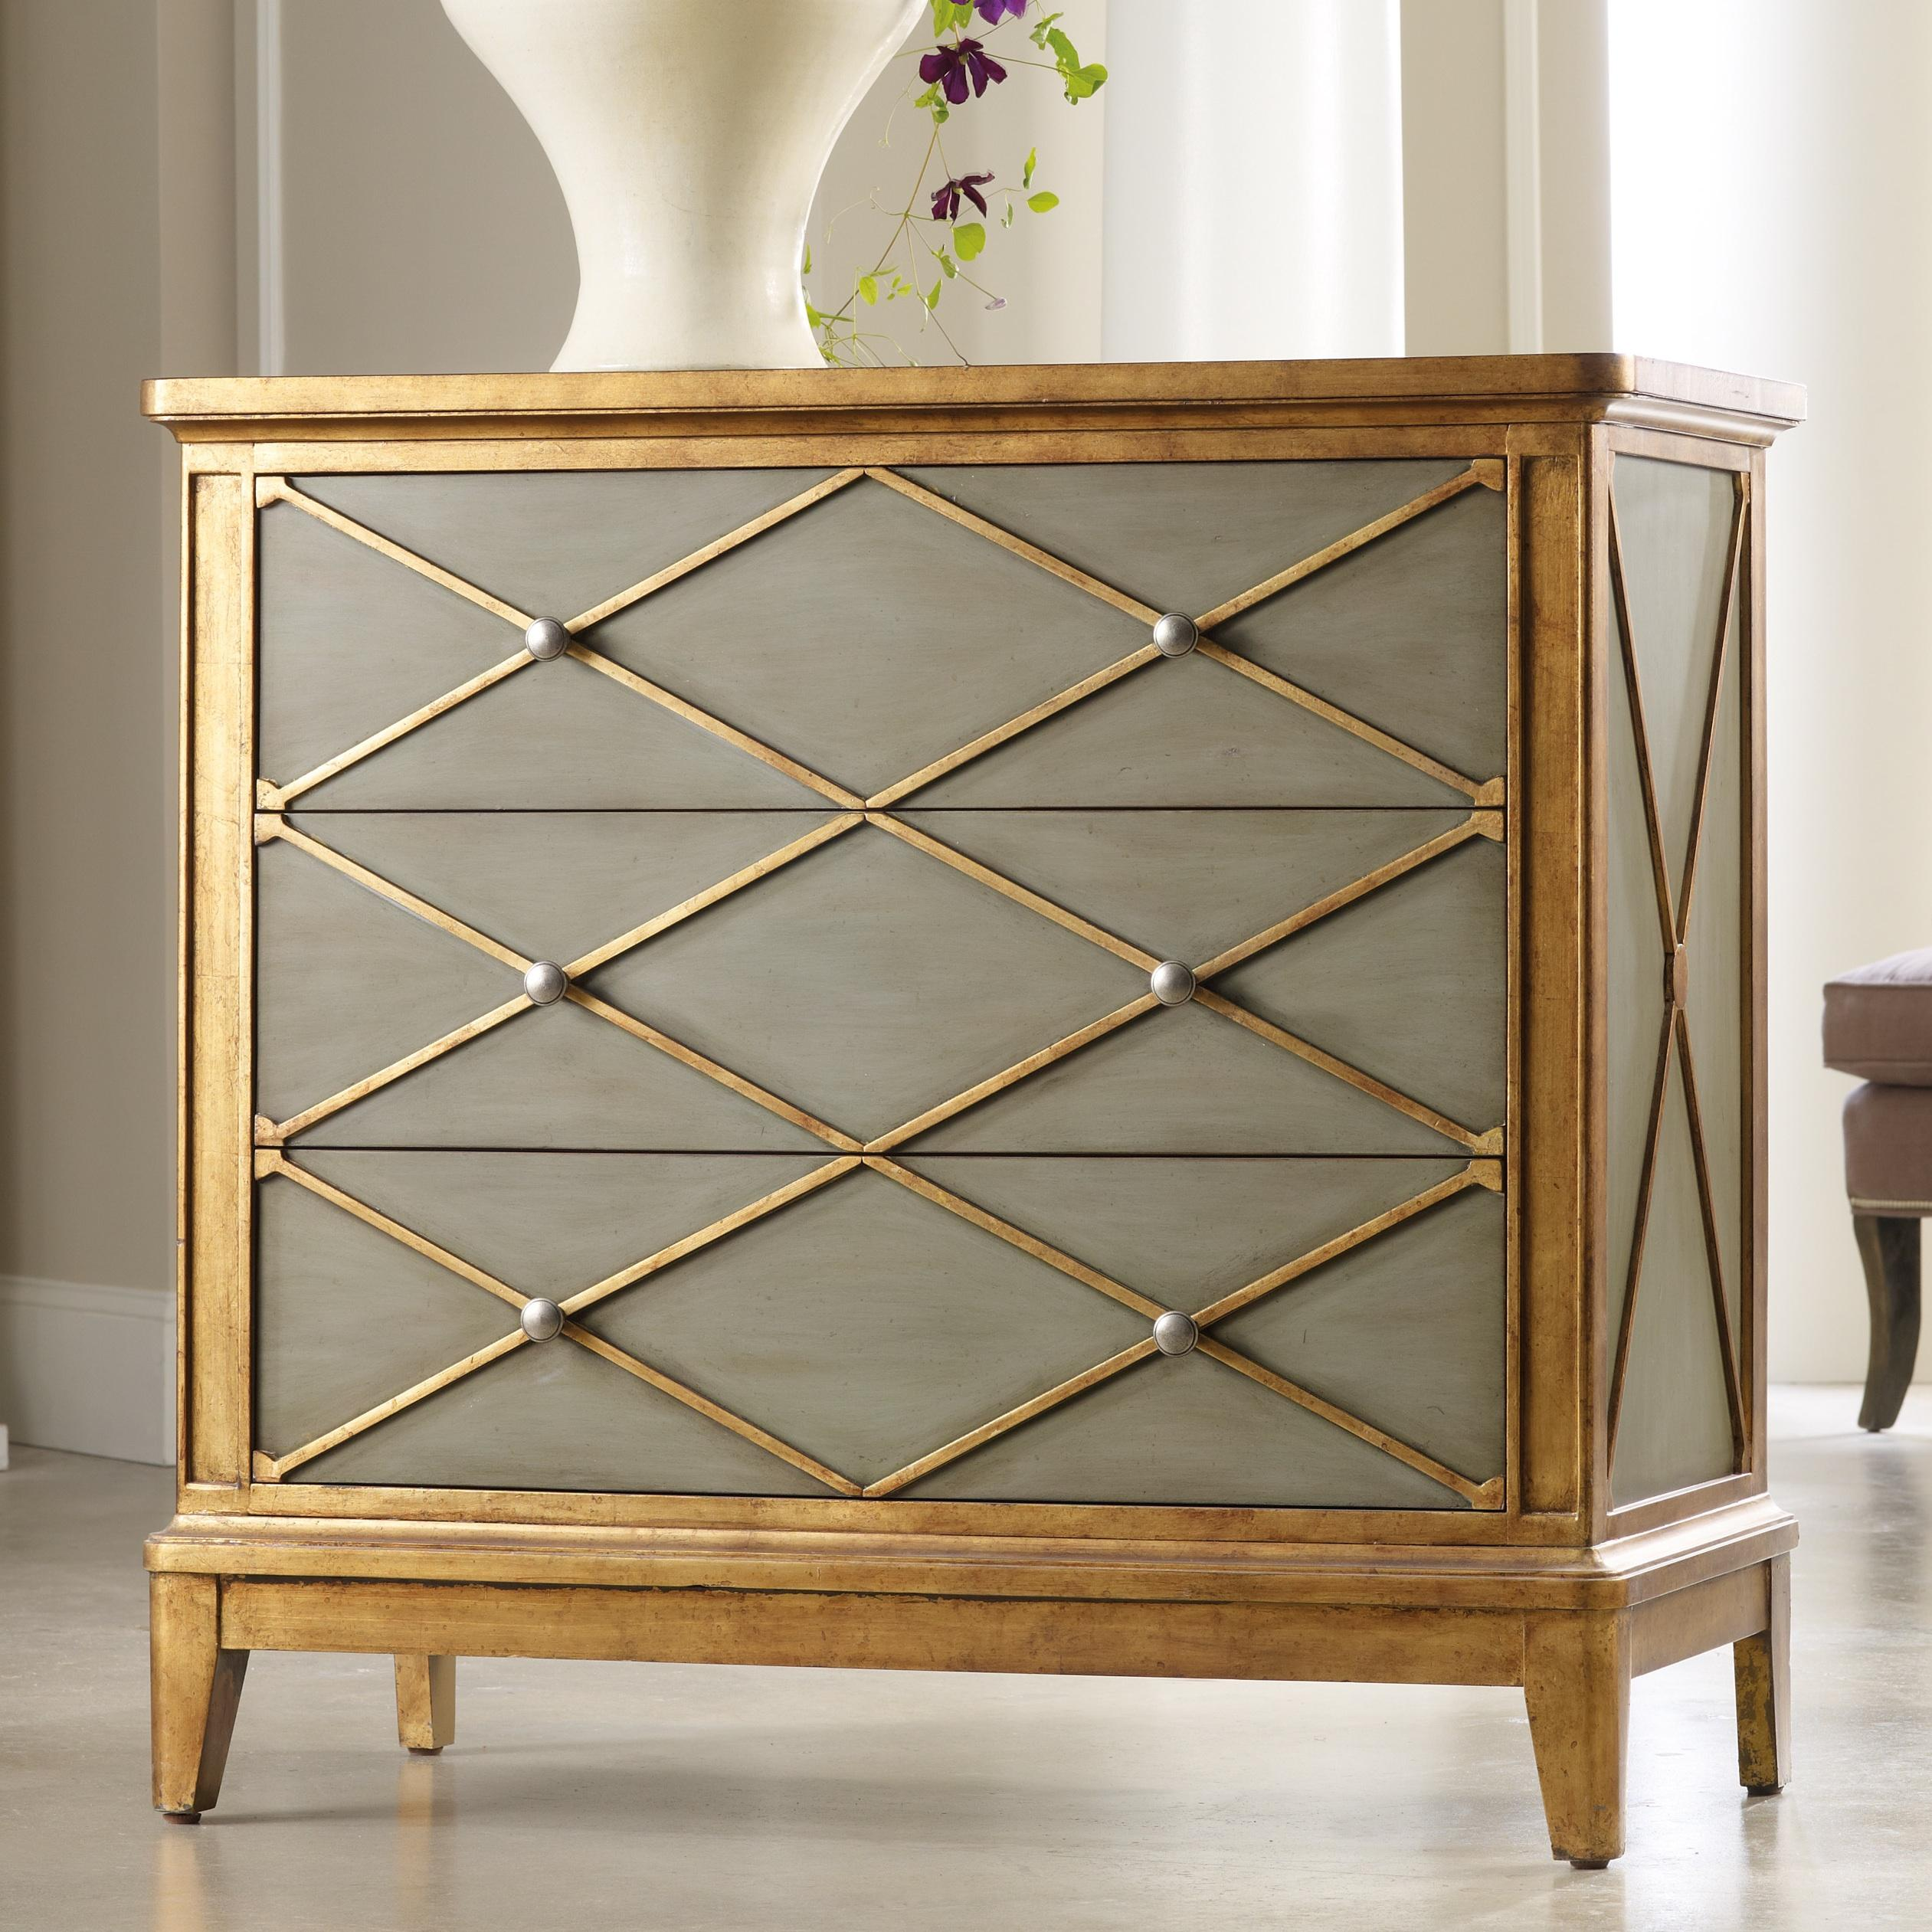 hooker furniture melange paxton gold trim chest with drawers products color accent table ahfa occasional cabinet locator home interior accessories target threshold side beverage